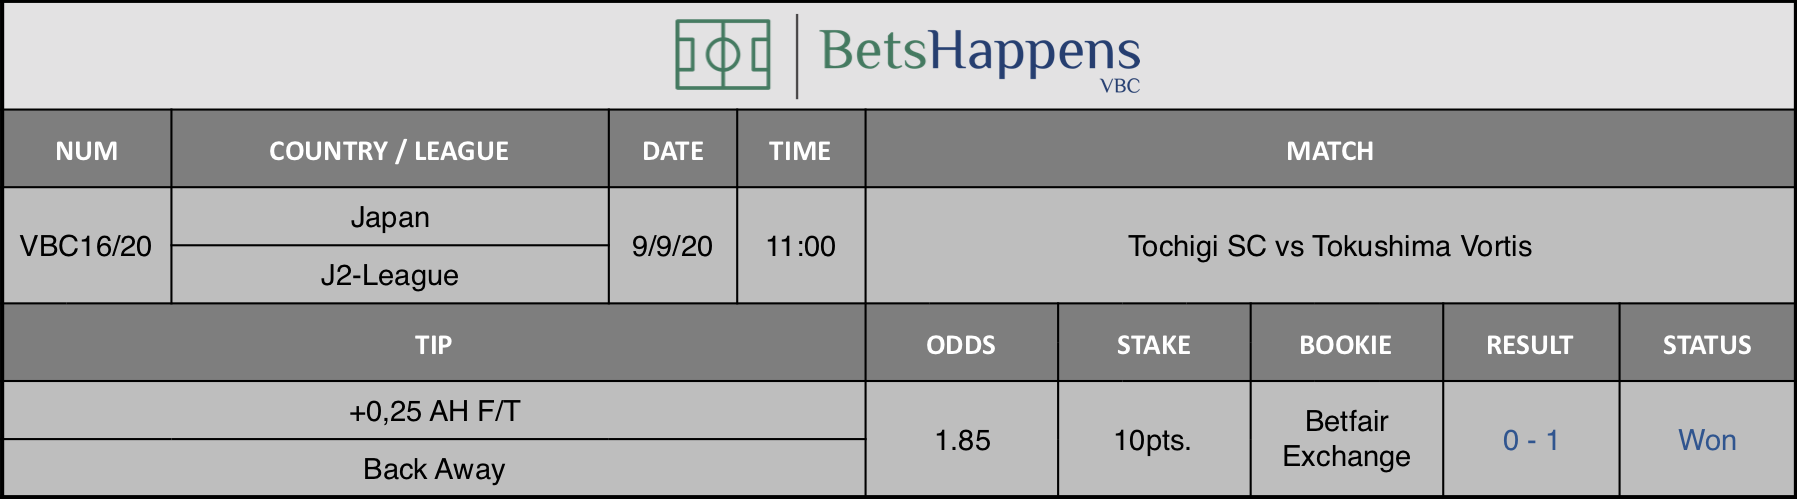 Results of our tip for the Tochigi SC vs Tokushima Vortis match where +0.25 AH F / T Back Away is recommended.